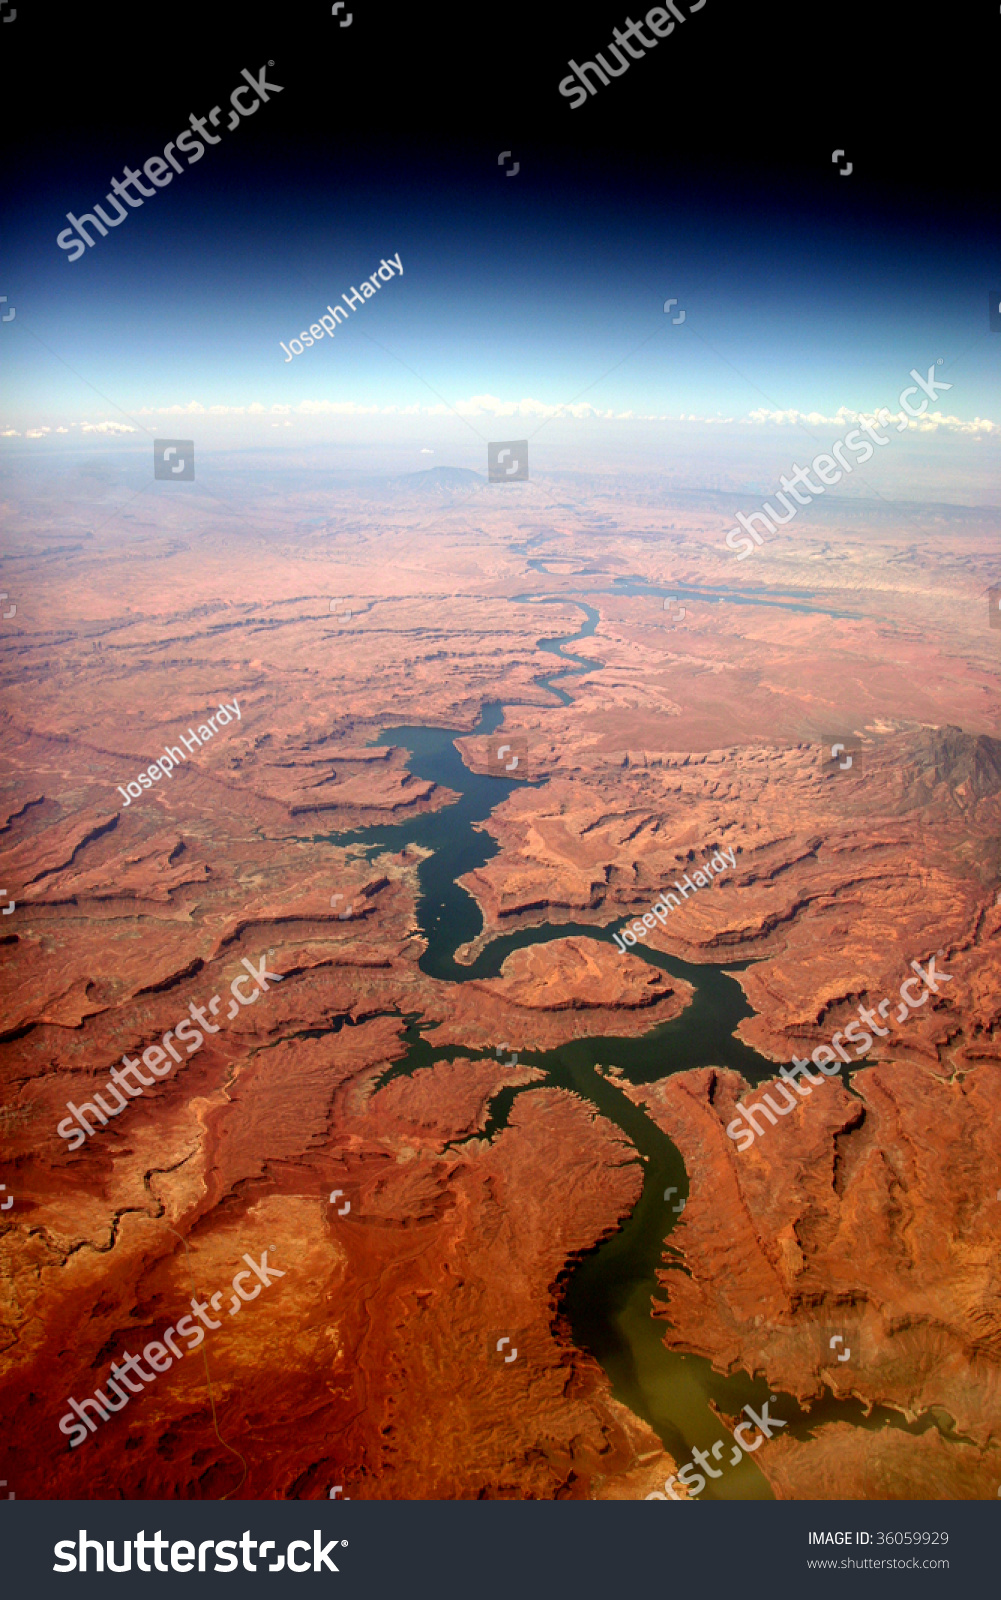 area canyon essay glen national photographic recreation Ask biztravr about glen canyon national recreation area thank biztravr this review is the subjective opinion of a tripadvisor member and not of tripadvisor llc.